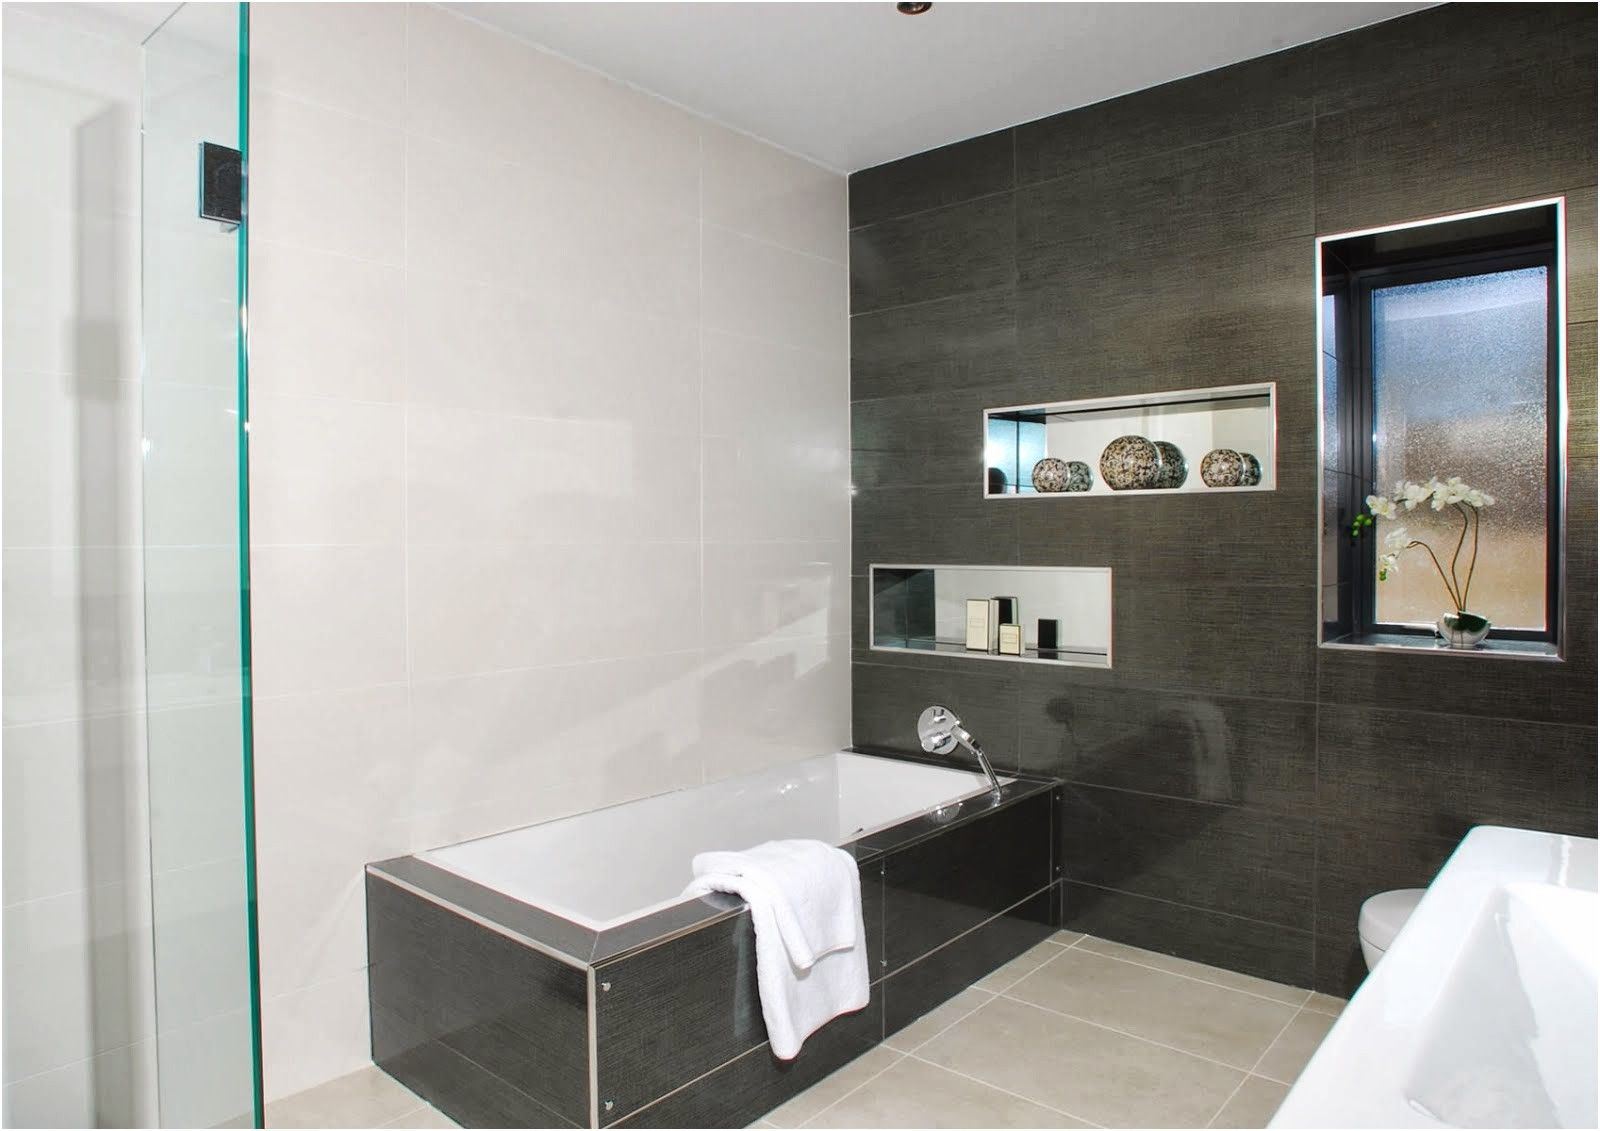 Uk Bathroom Design Bathroom Design Ideas Uk From Bathroom Designs Uk